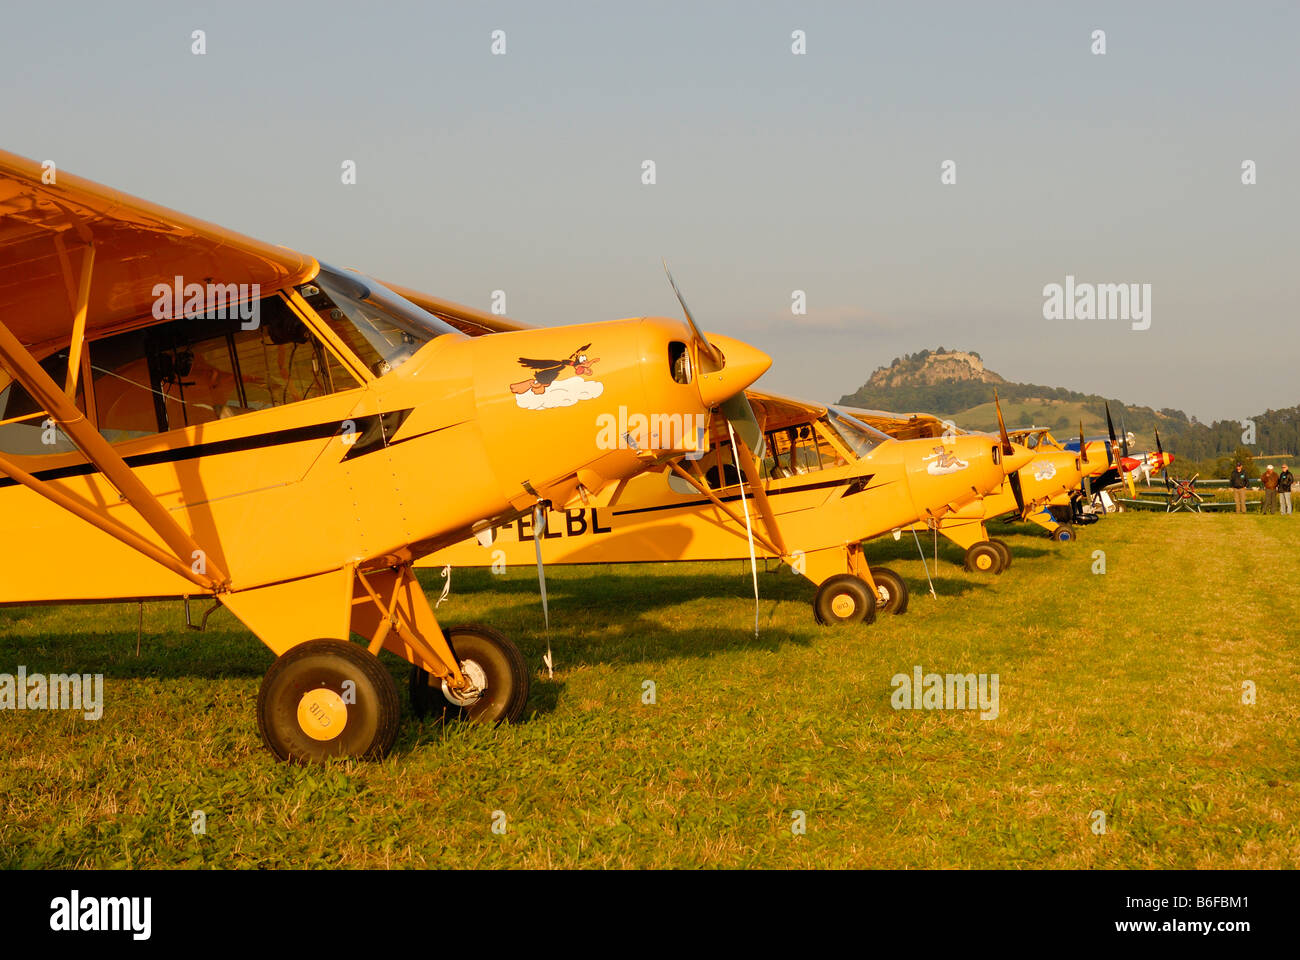 Propeller-driven aircraft parked in a row on a meadow, Flugtag Hilzingen 2008, Konstanz district, Baden-Wuerttemberg, - Stock Image